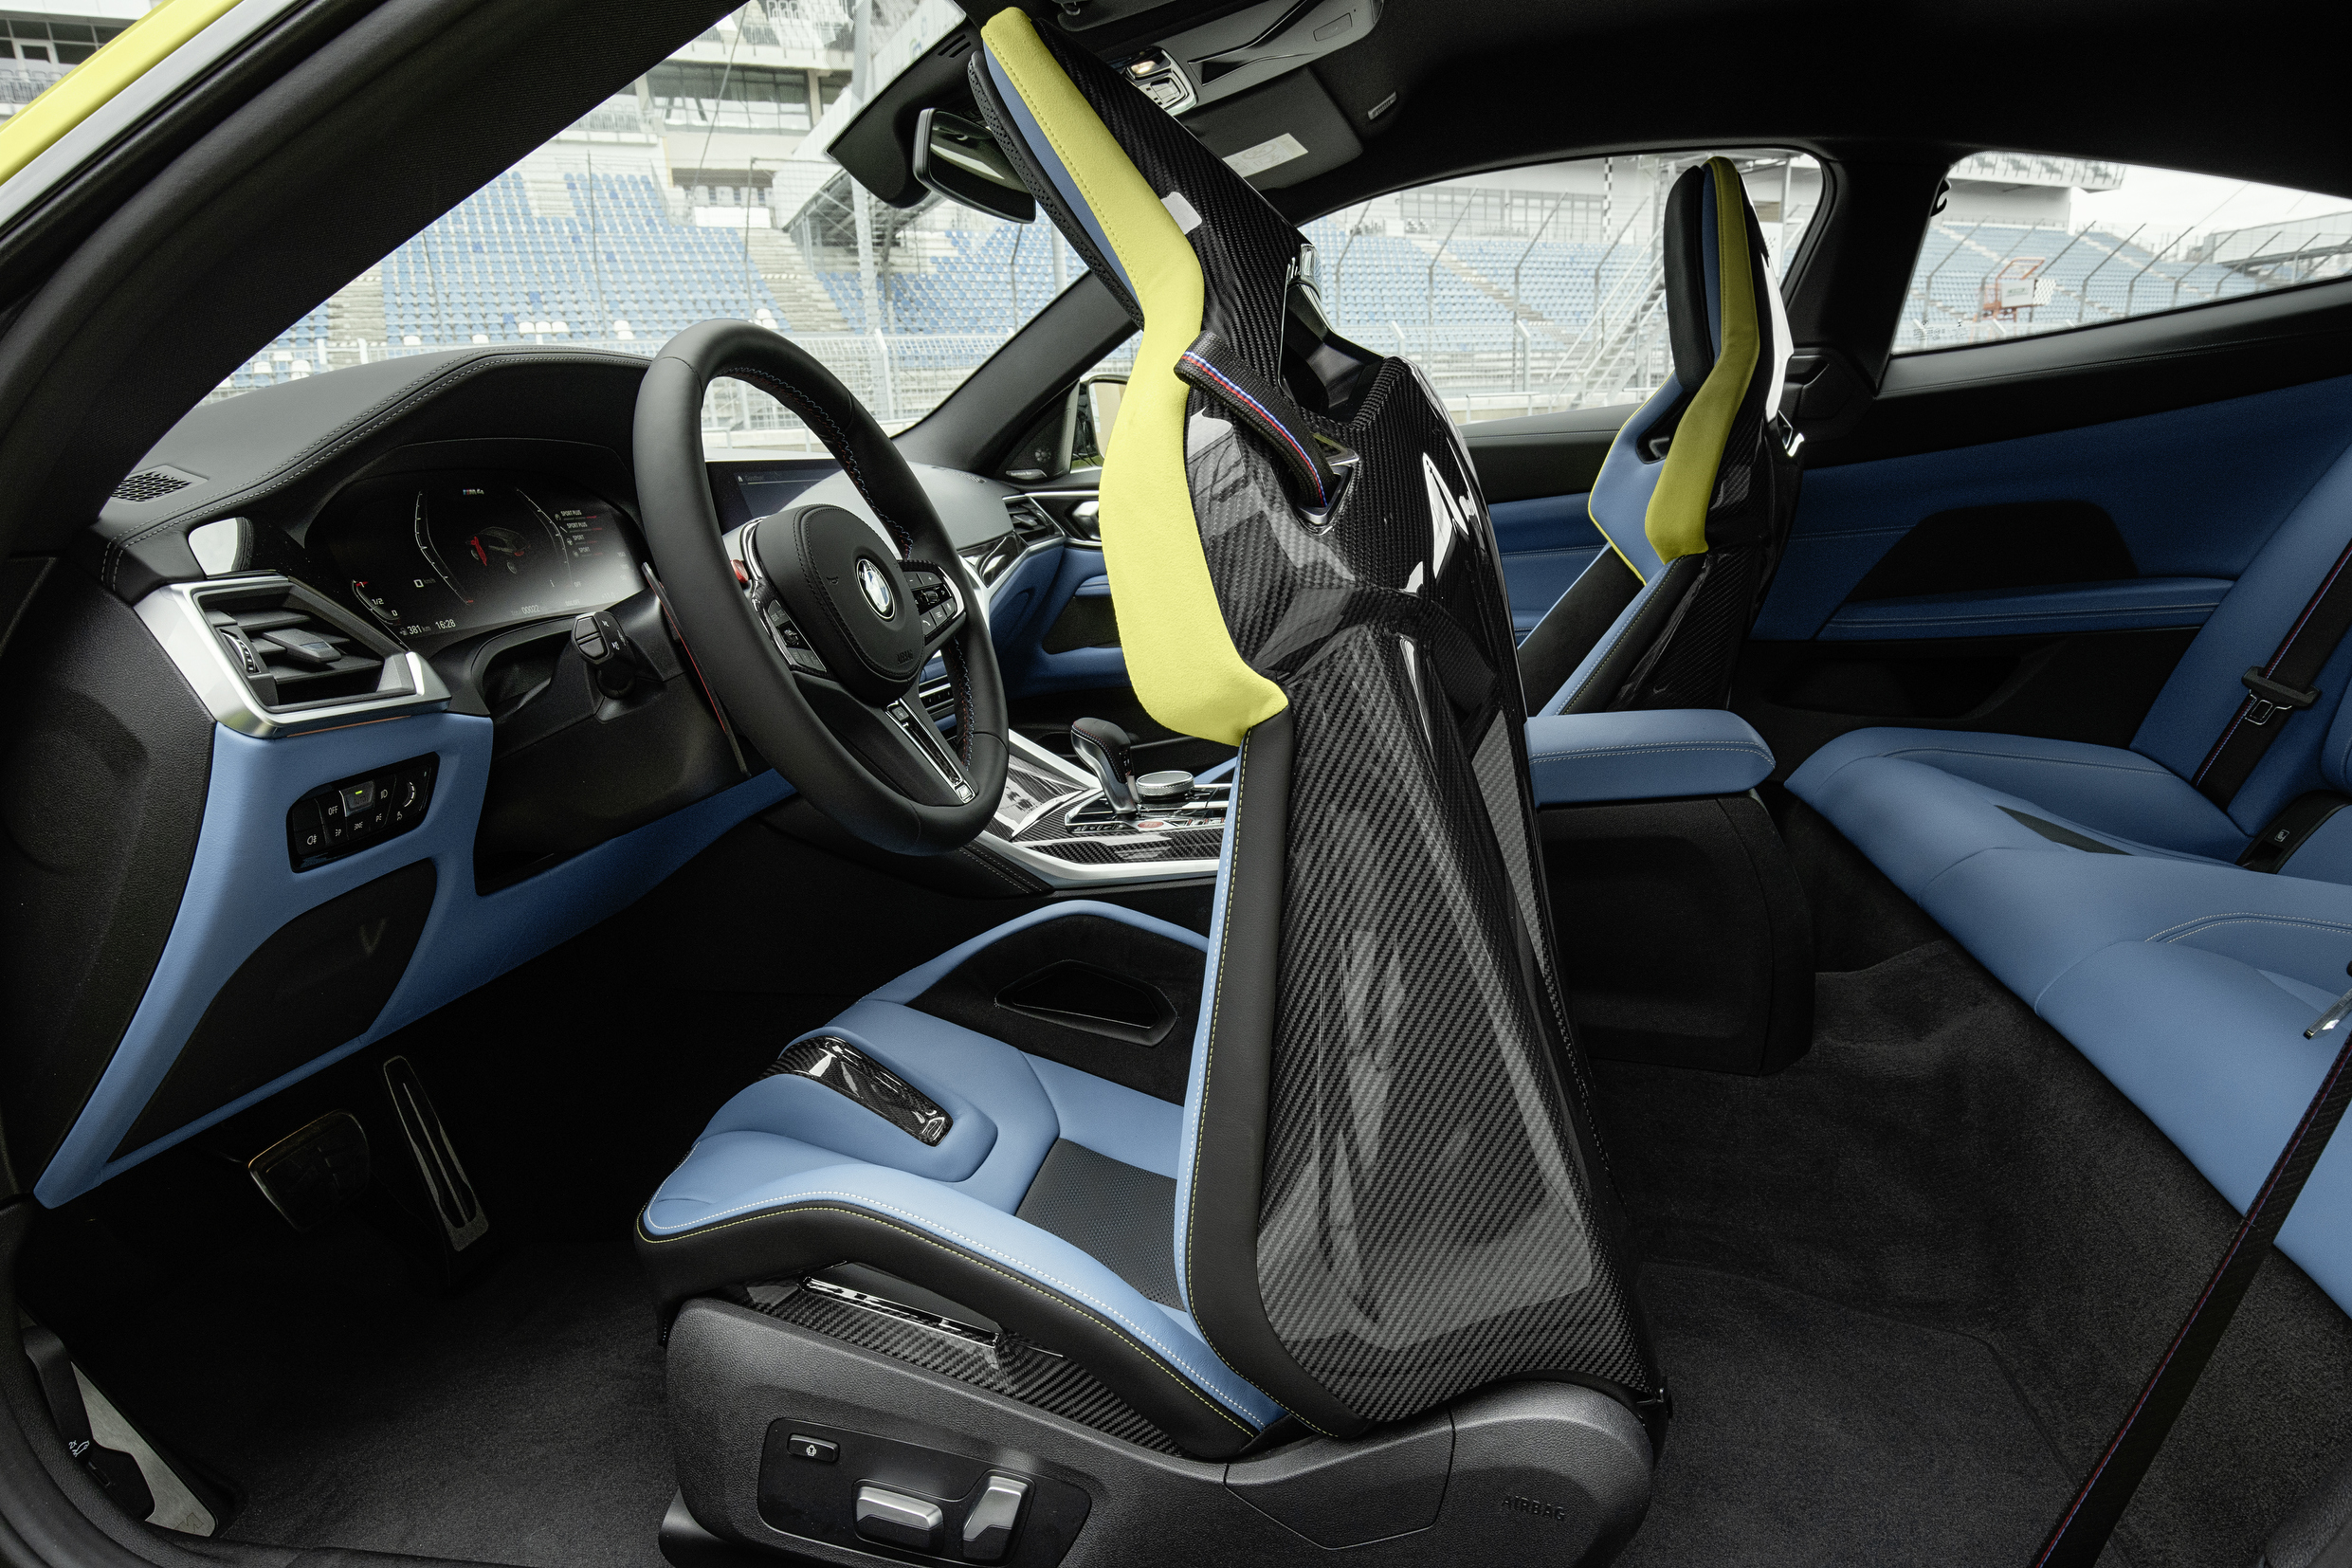 BMW M4 carbon fiber seats